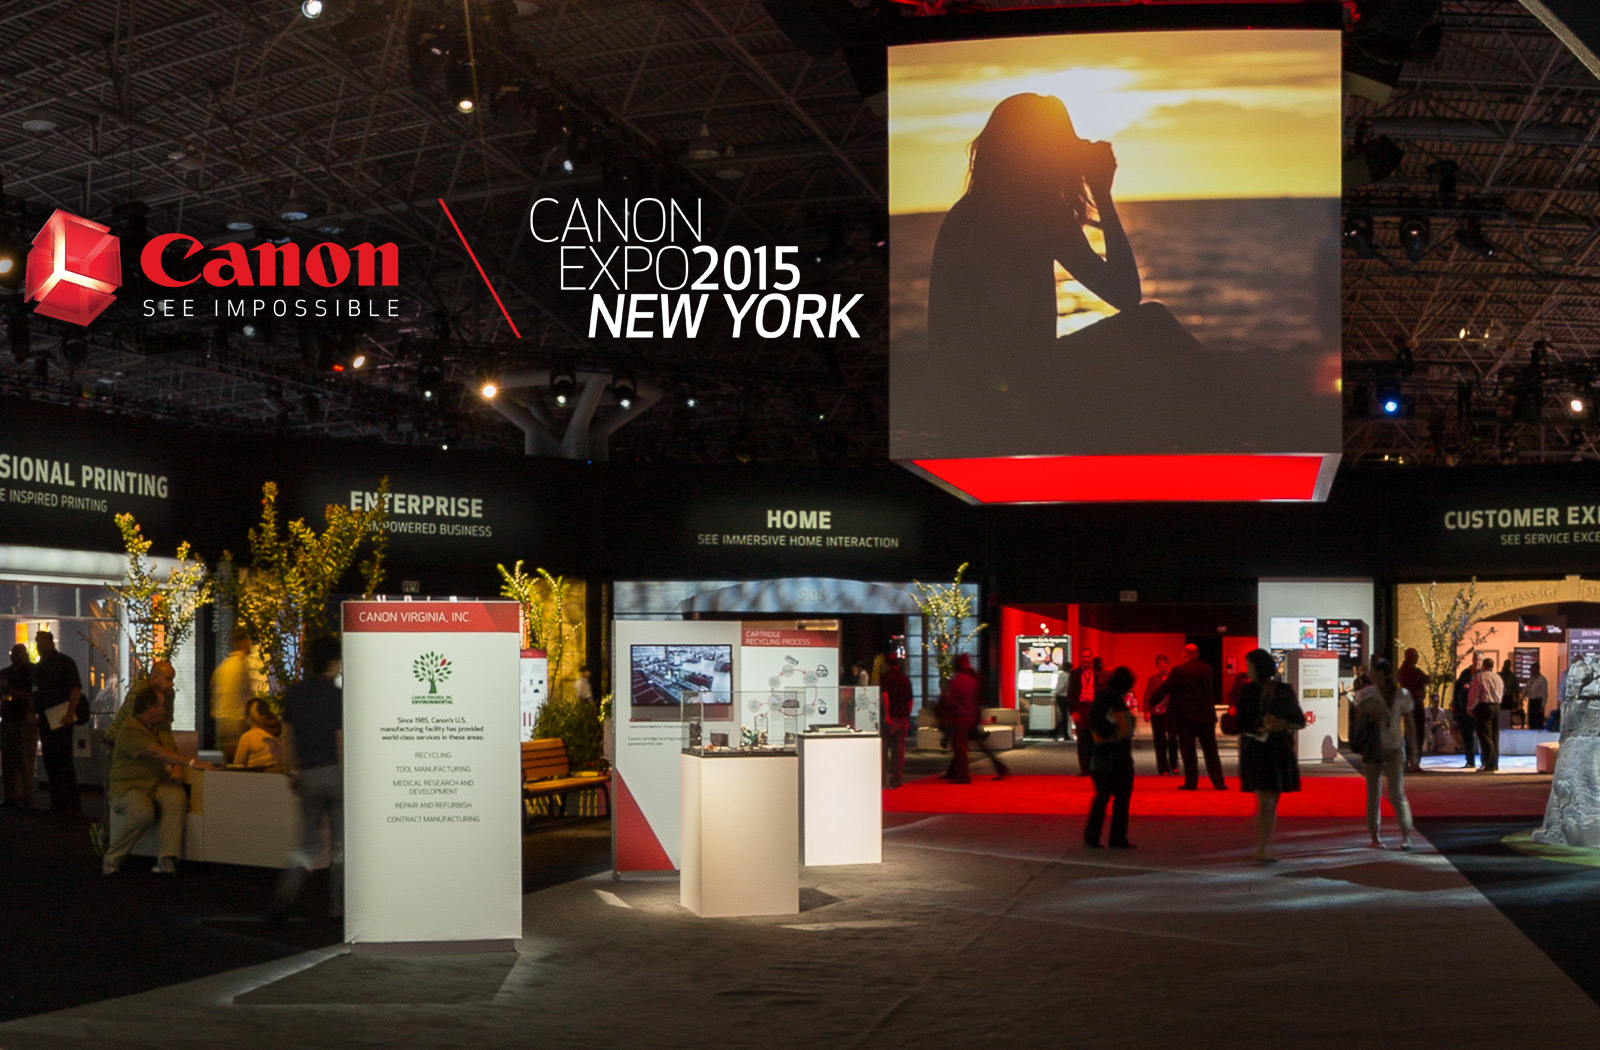 Canon Expo New York